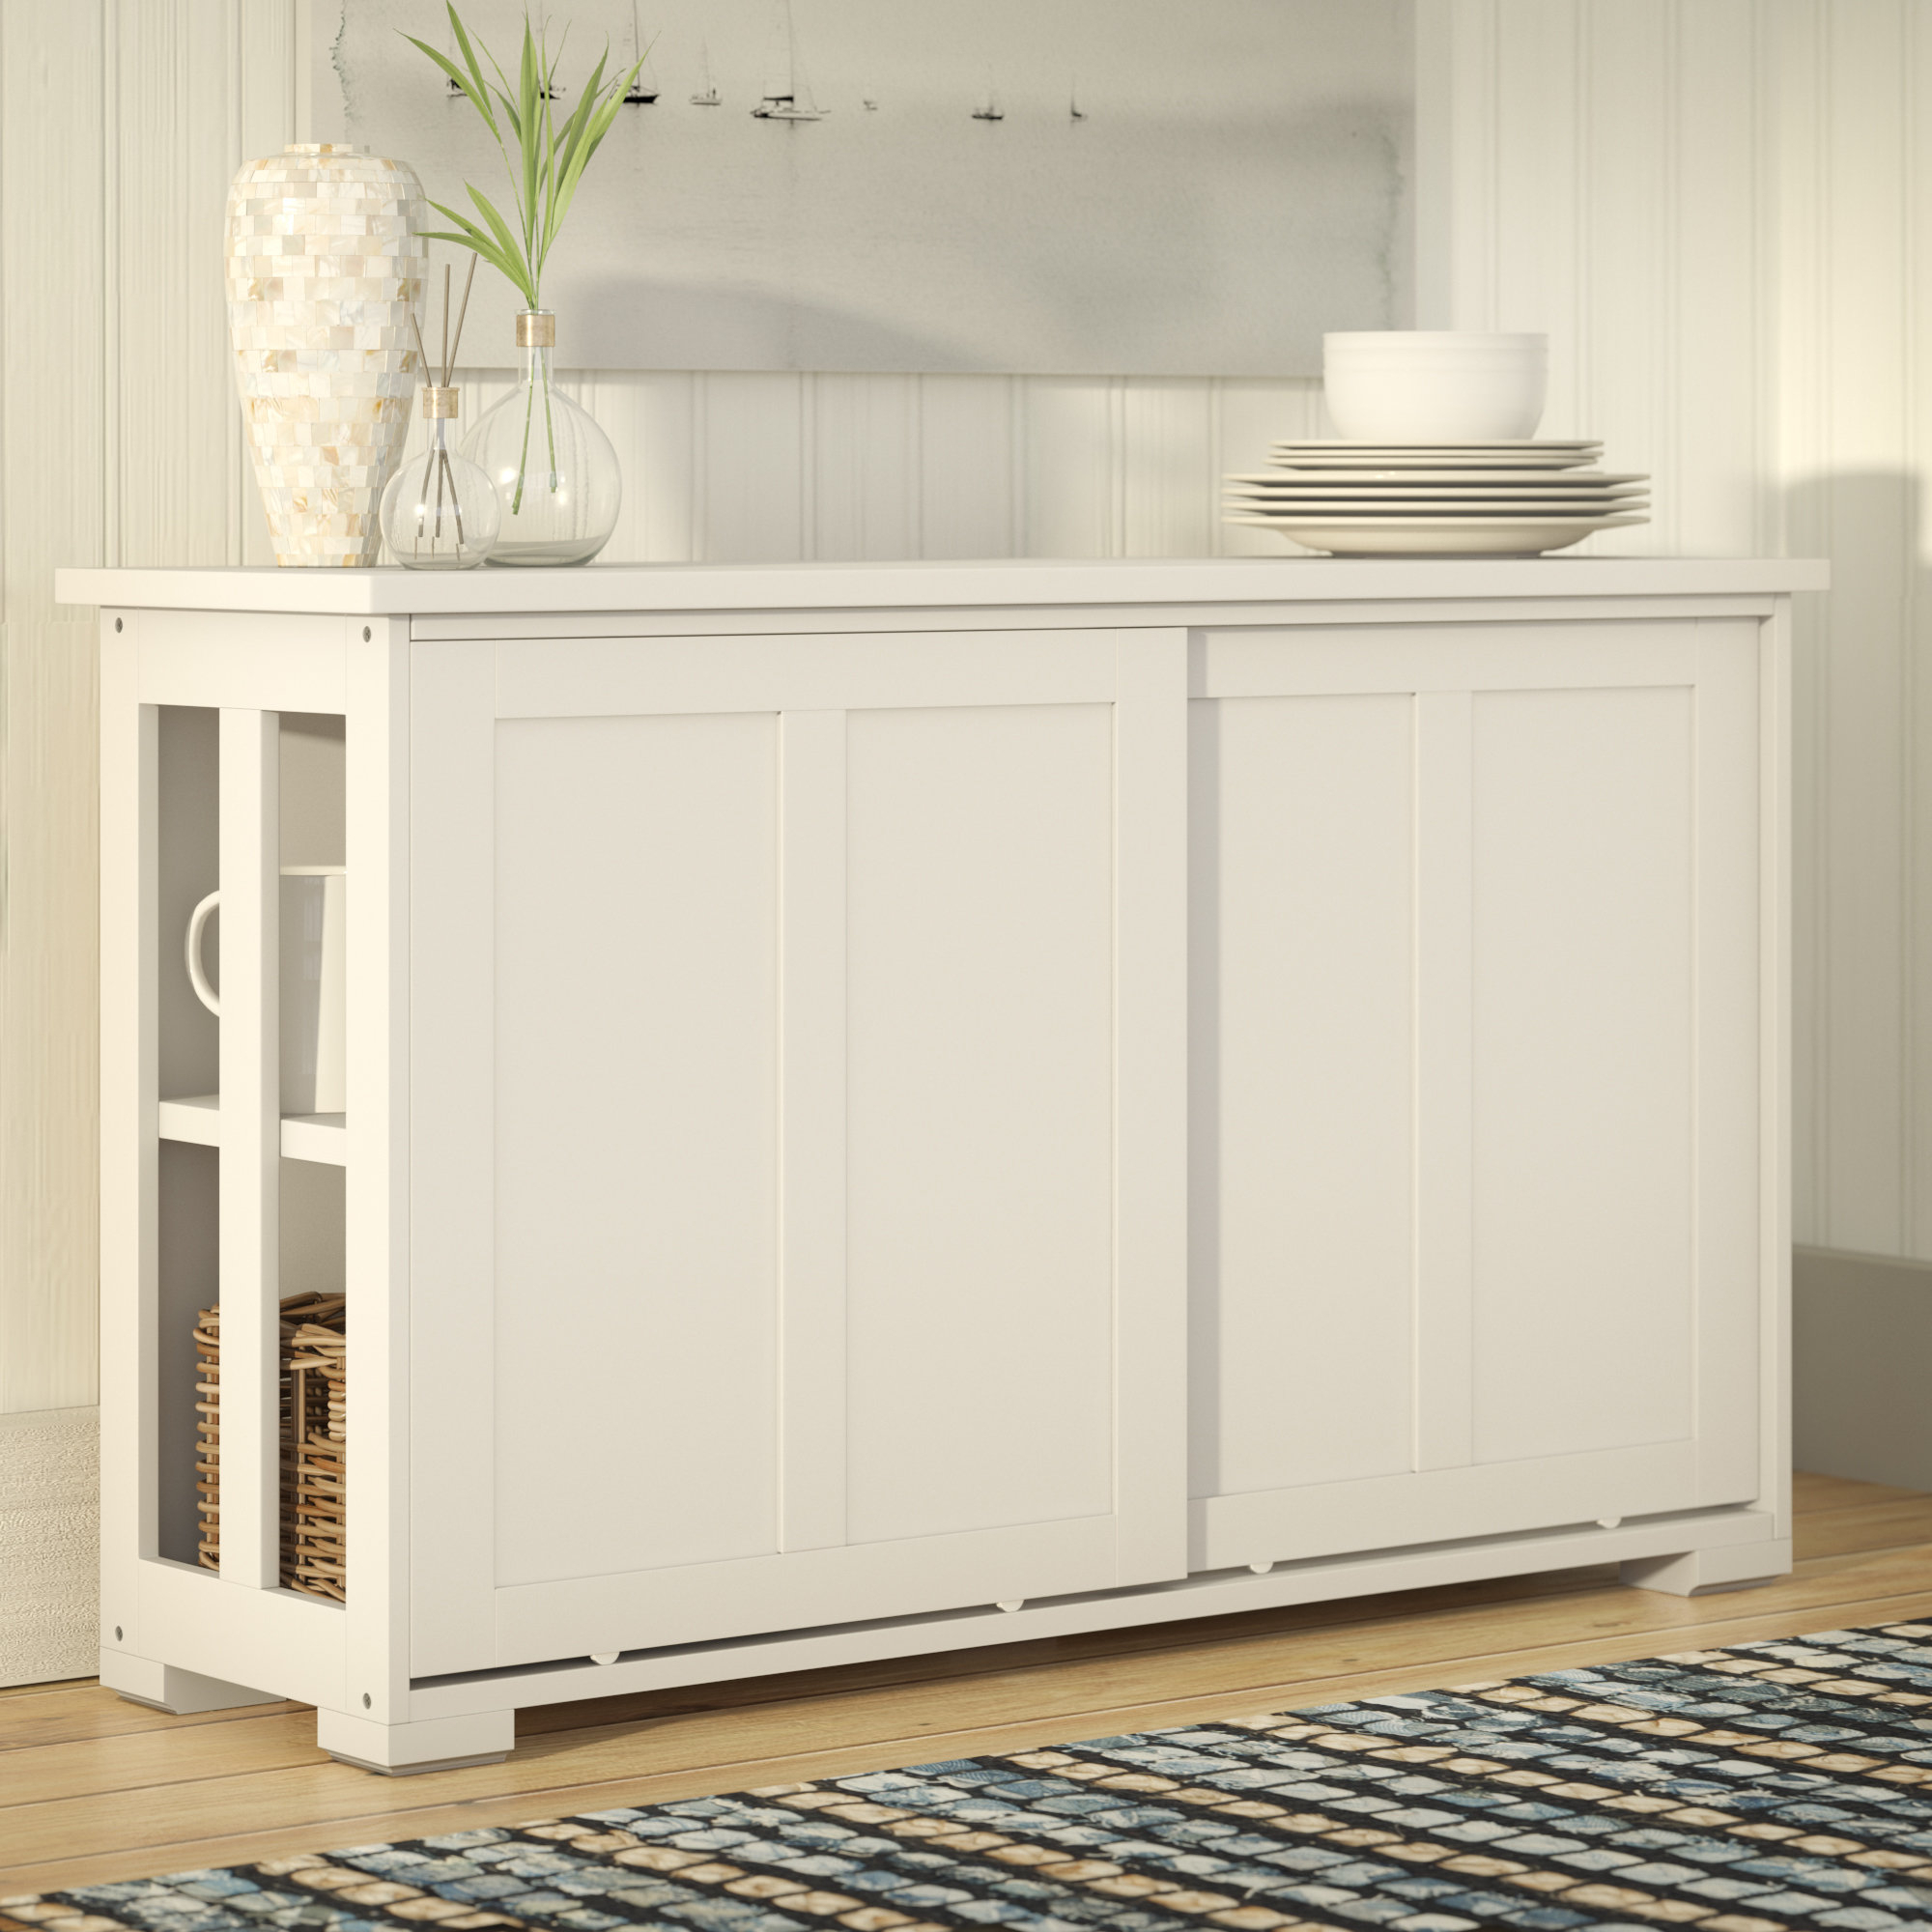 Narrow Dining Room Sideboards | Wayfair For Best And Newest Pineville Dining Sideboards (#9 of 20)